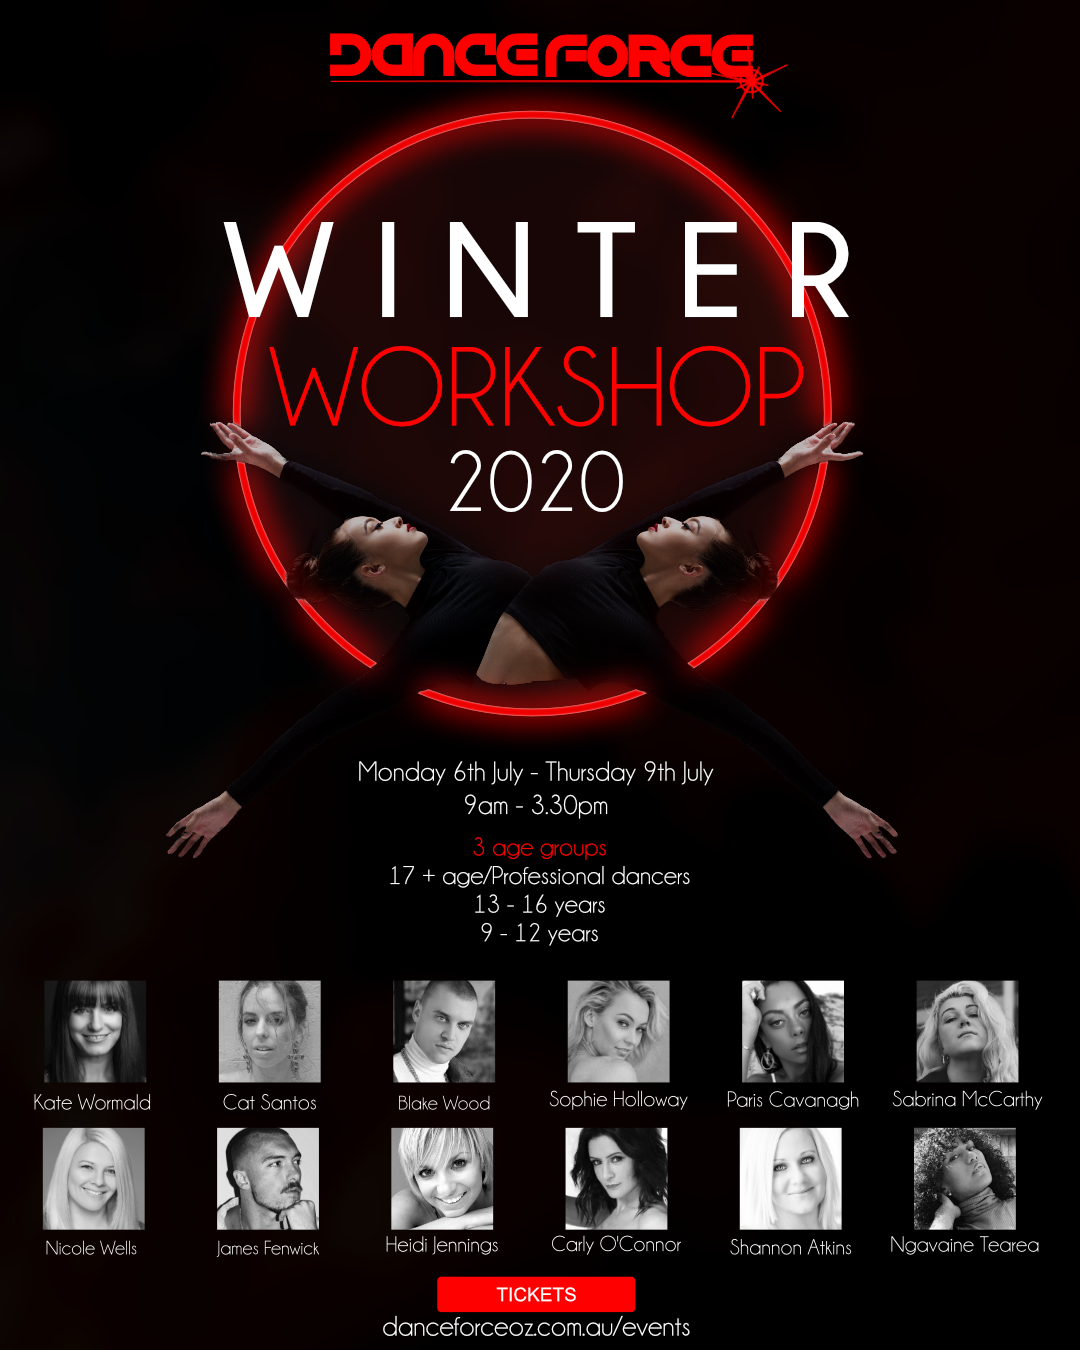 Winter Workshop - 2020